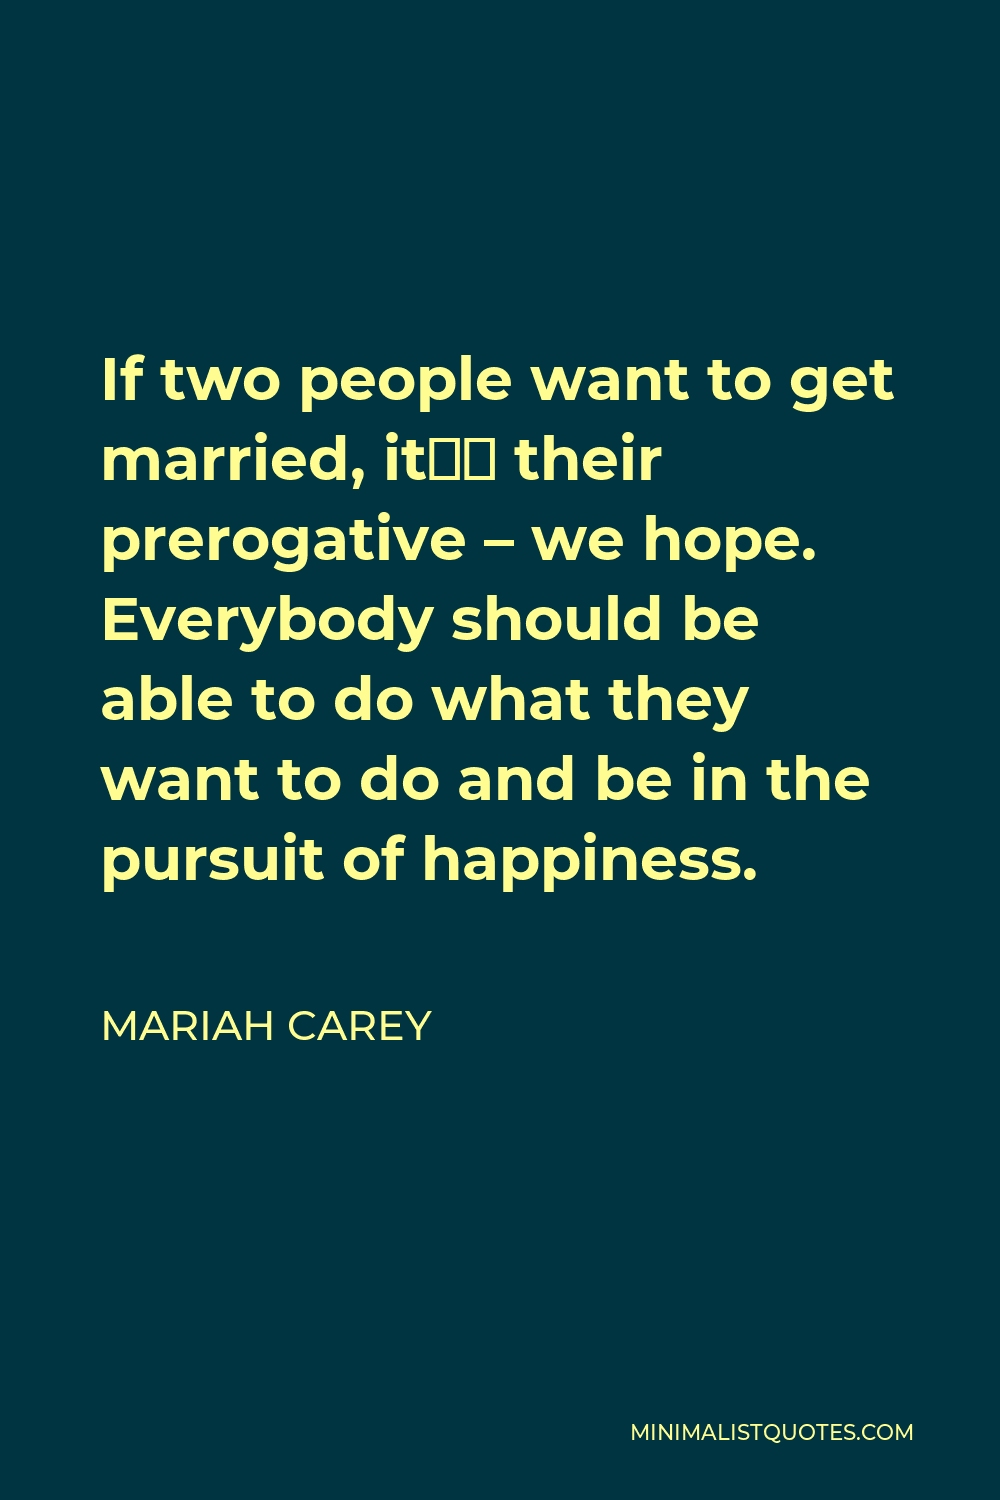 Mariah Carey Quote - If two people want to get married, it's their prerogative – we hope. Everybody should be able to do what they want to do and be in the pursuit of happiness.